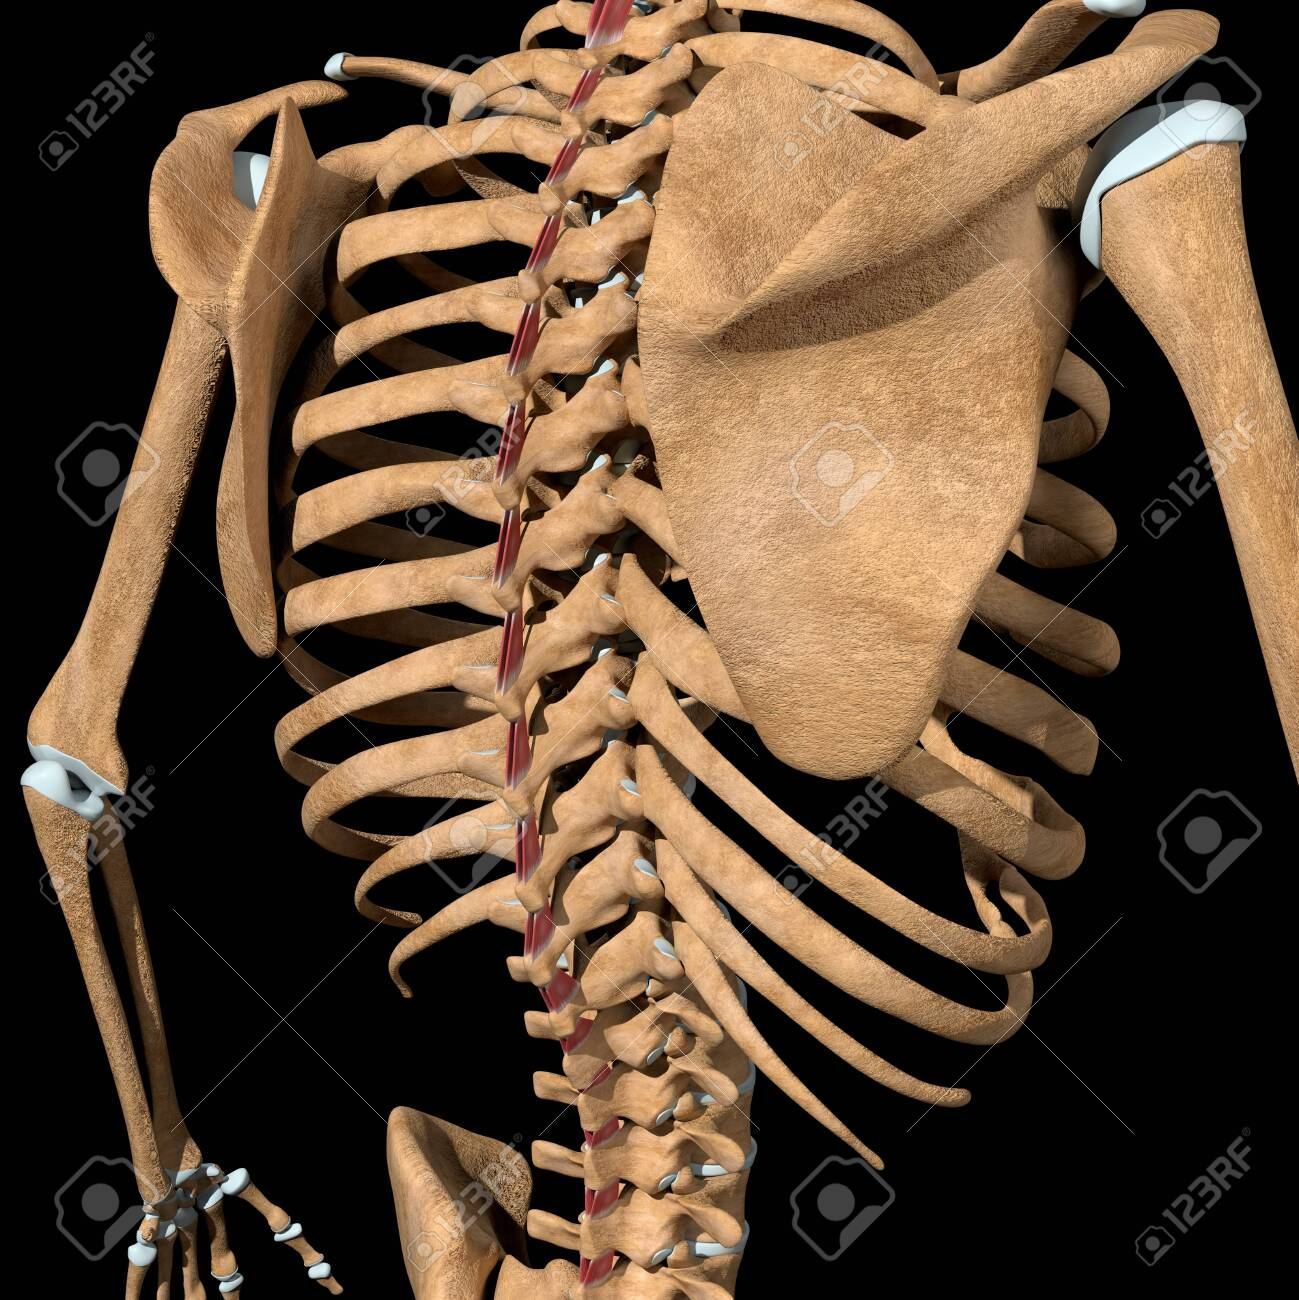 This 3d illustration shows the interspinales muscles on skeleton - 141774710